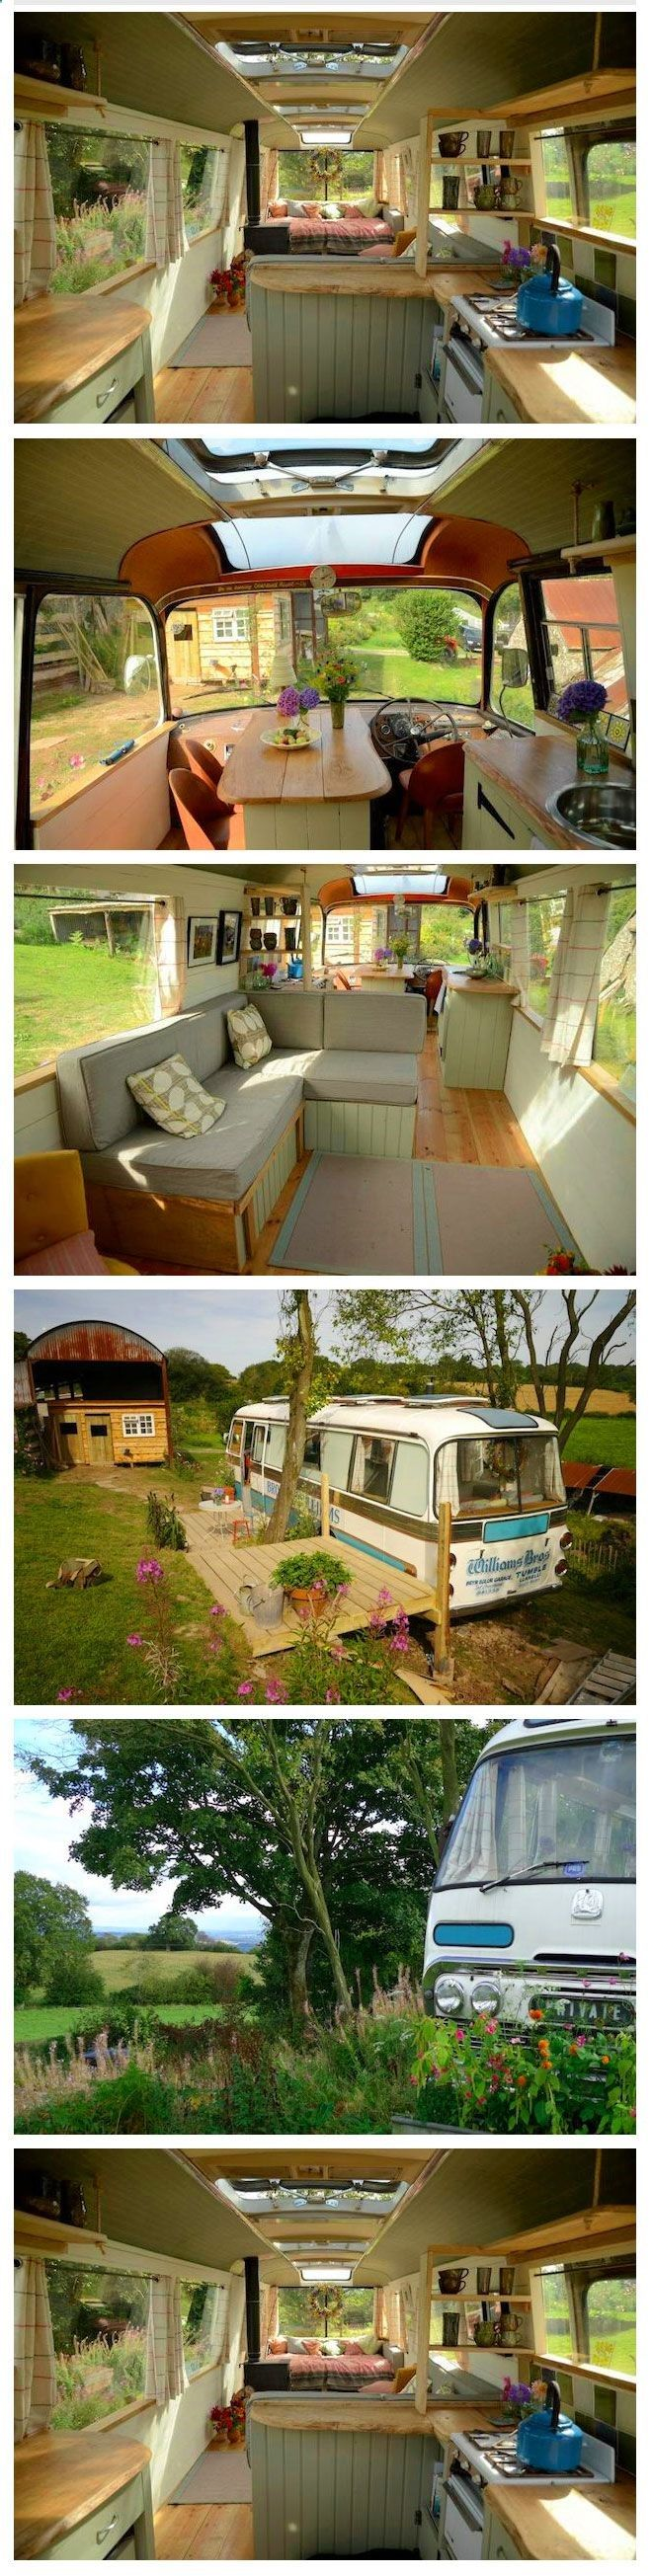 vanlife I'm currently working on making my Land Yacht, and her surroundings, just as beautiful as this one! is part of Remodeled campers -